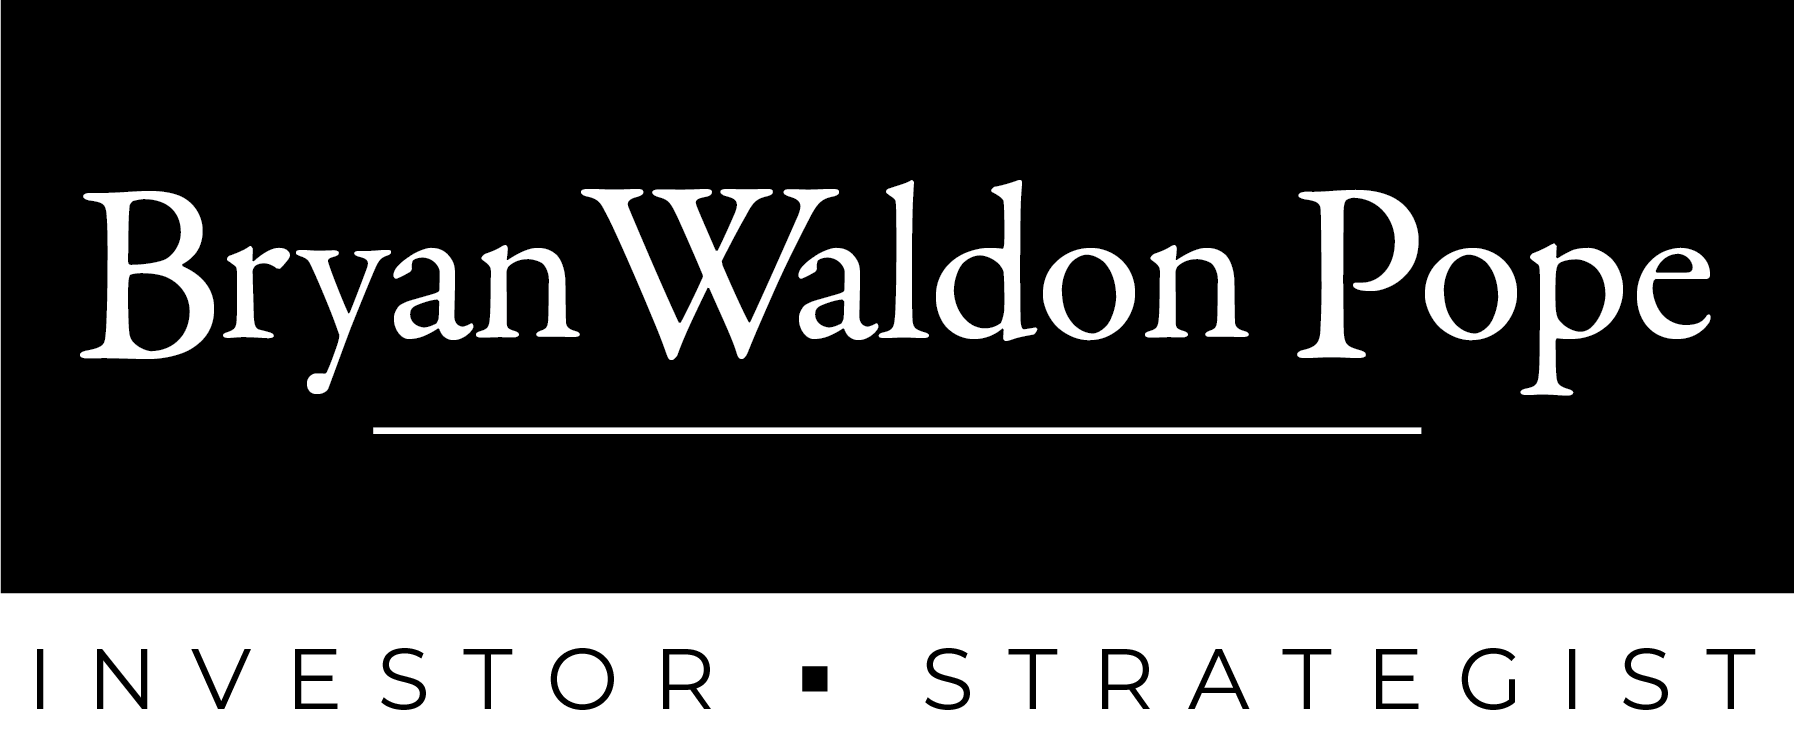 Bryan Waldon Pope Investor Strategist